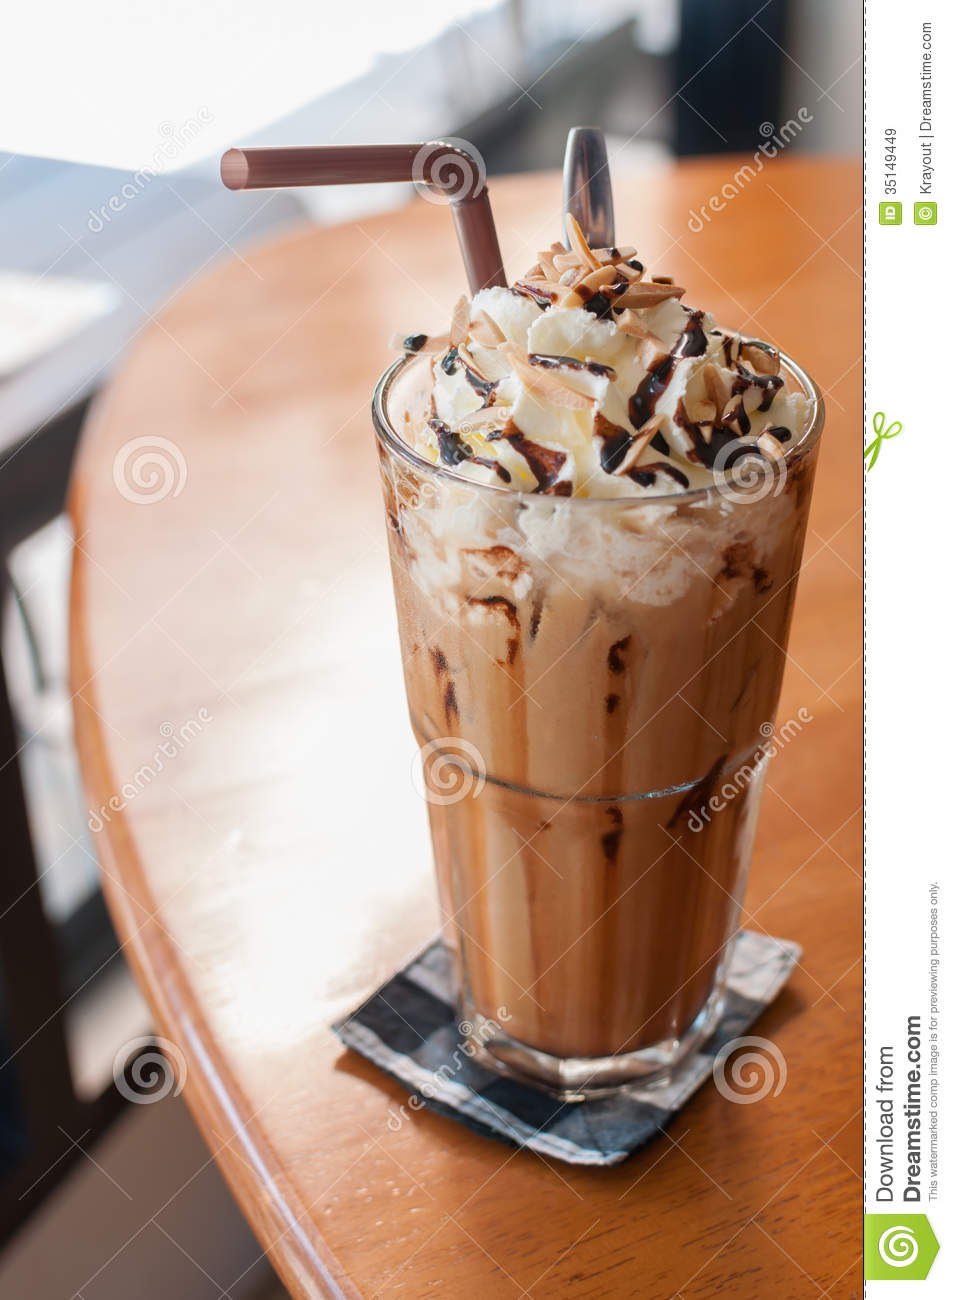 Iced coffee with whipped cream and sprinkle with almonds.